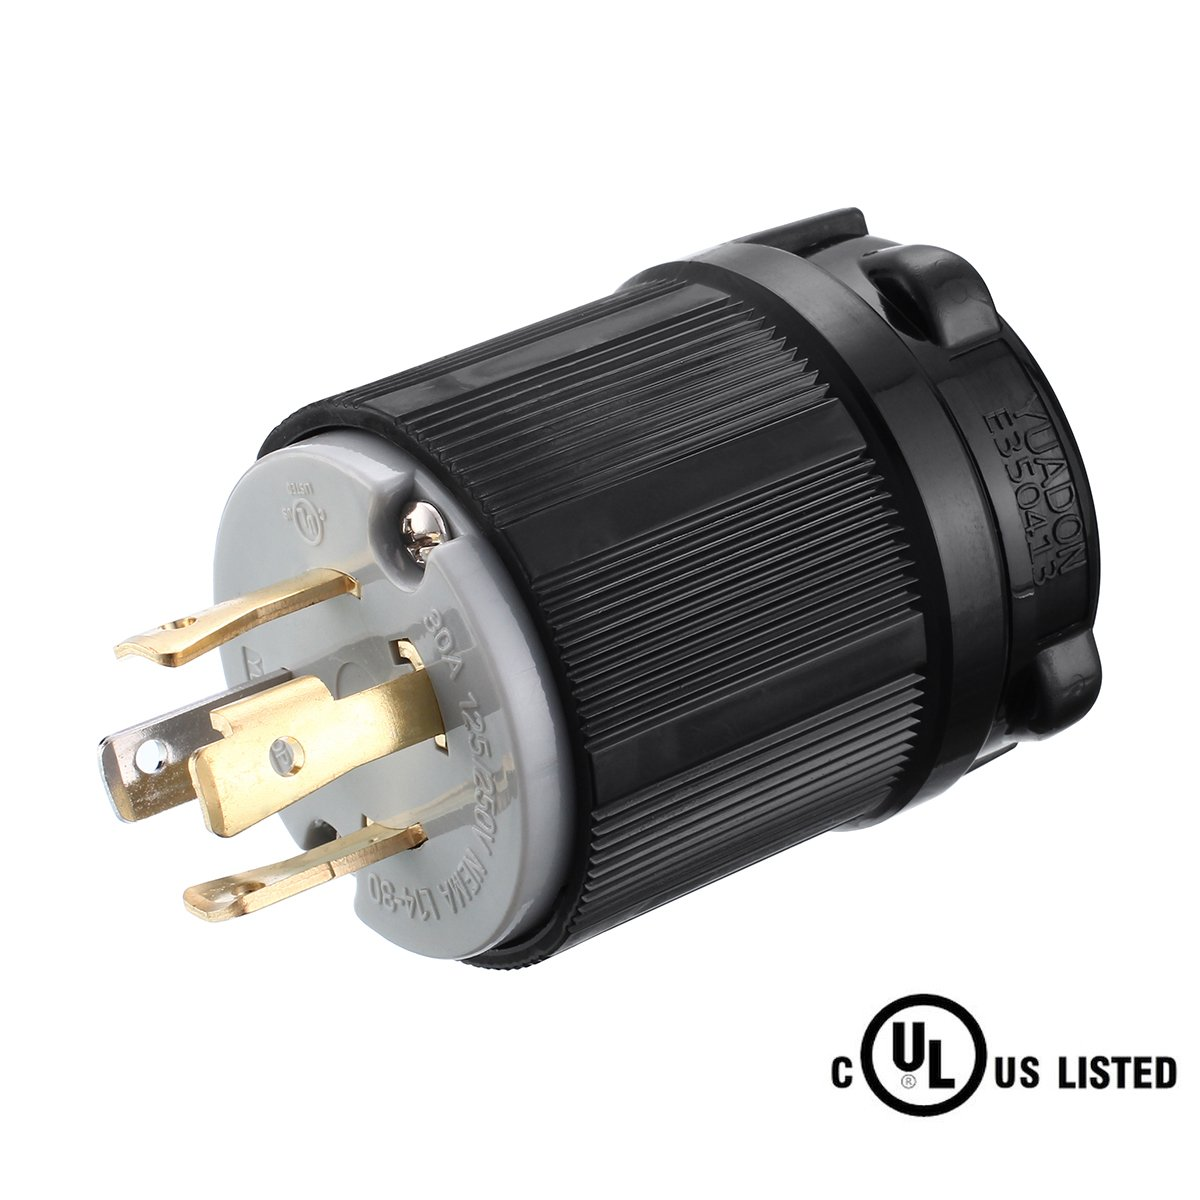 Buy Male Generator L14 30p 4 Prong Twist Lock Plug To Female 10 50r Wiring A 4prong Cable Outlet Miady Nema 30 Amp Industrial Grade Locking